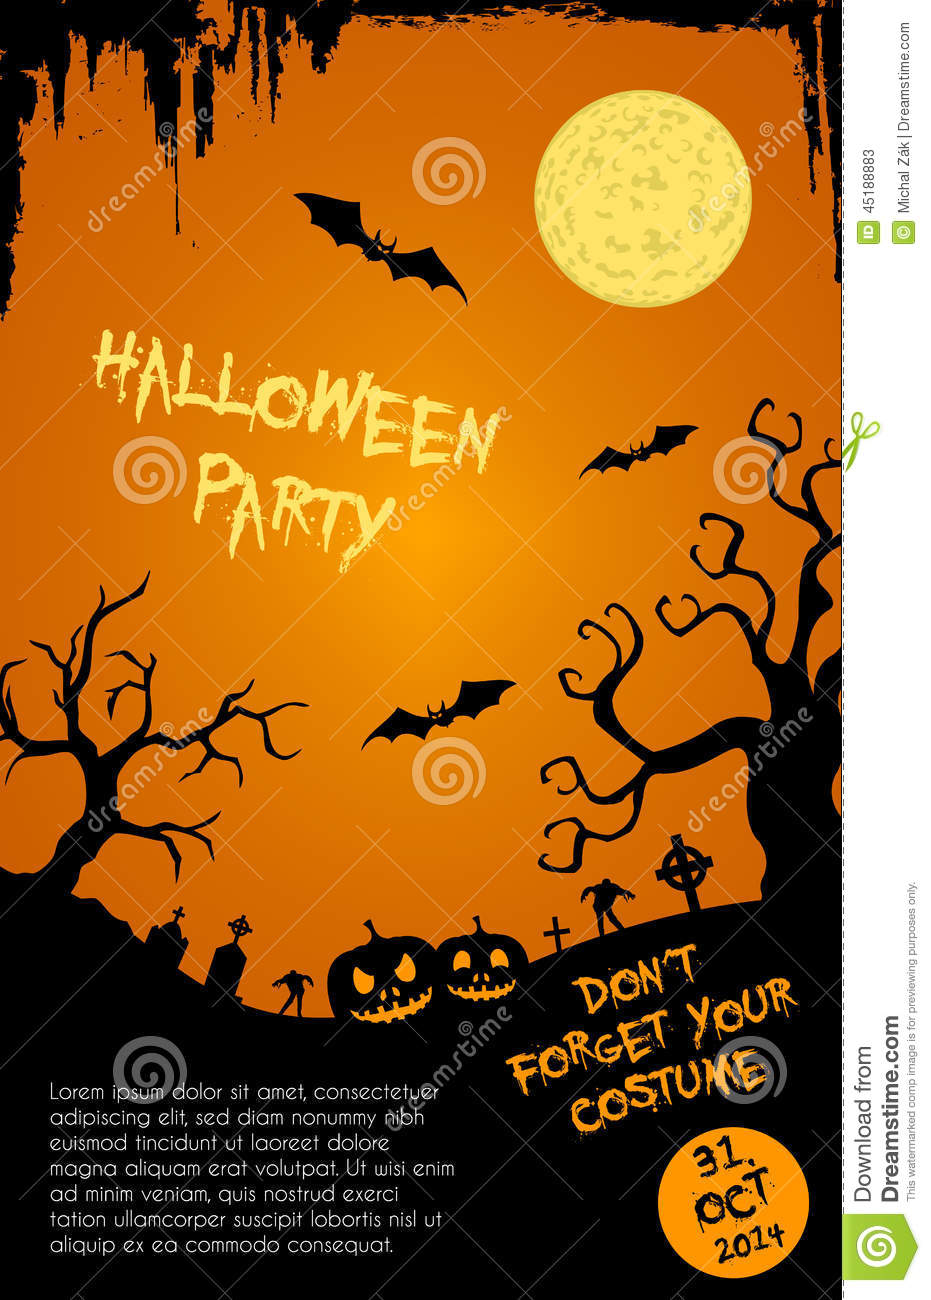 Halloween Party Invitation Cards was amazing invitation sample